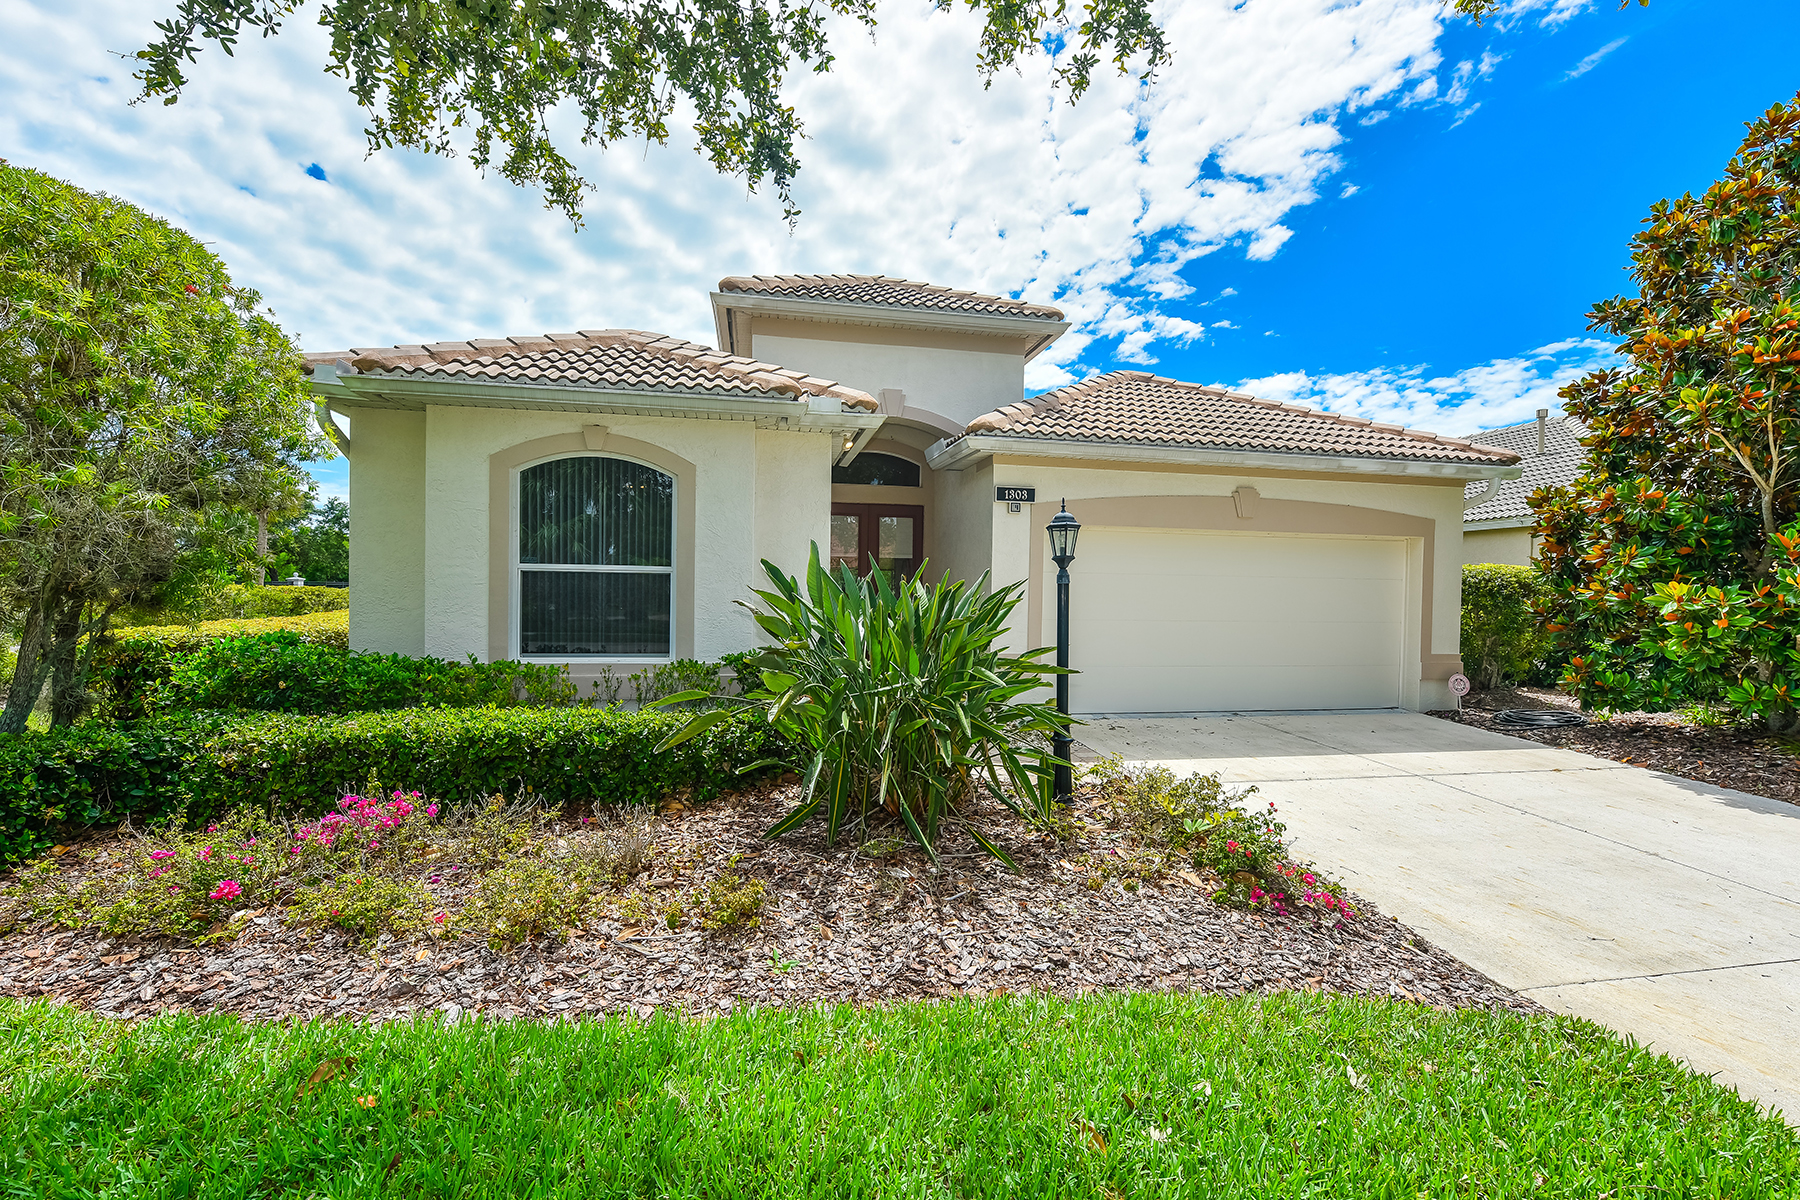 Single Family Home for Sale at WILLOWBEND 1303 Thornapple Dr Osprey, Florida, 34229 United States